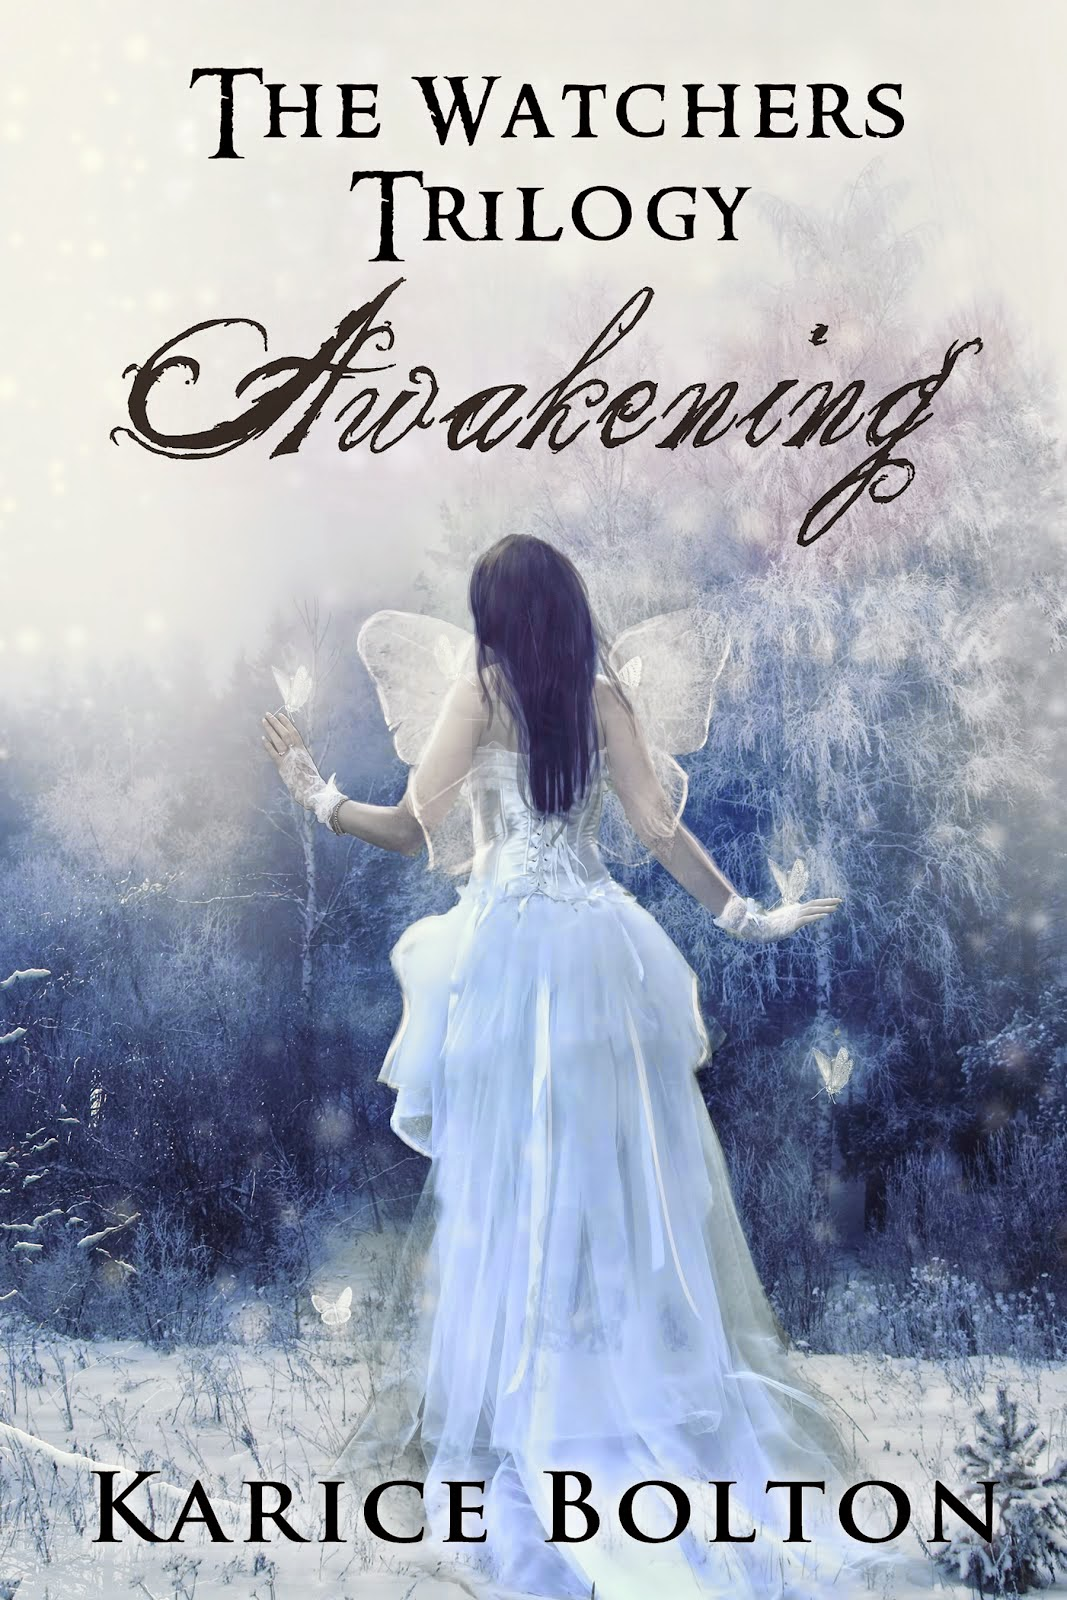 http://www.amazon.com/Awakening-Watchers-Trilogy-Karice-Bolton-ebook/dp/B005R5GX9A/ref=sr_1_1?s=digital-text&ie=UTF8&qid=1419200911&sr=1-1&keywords=awakening+by+karice+bolton